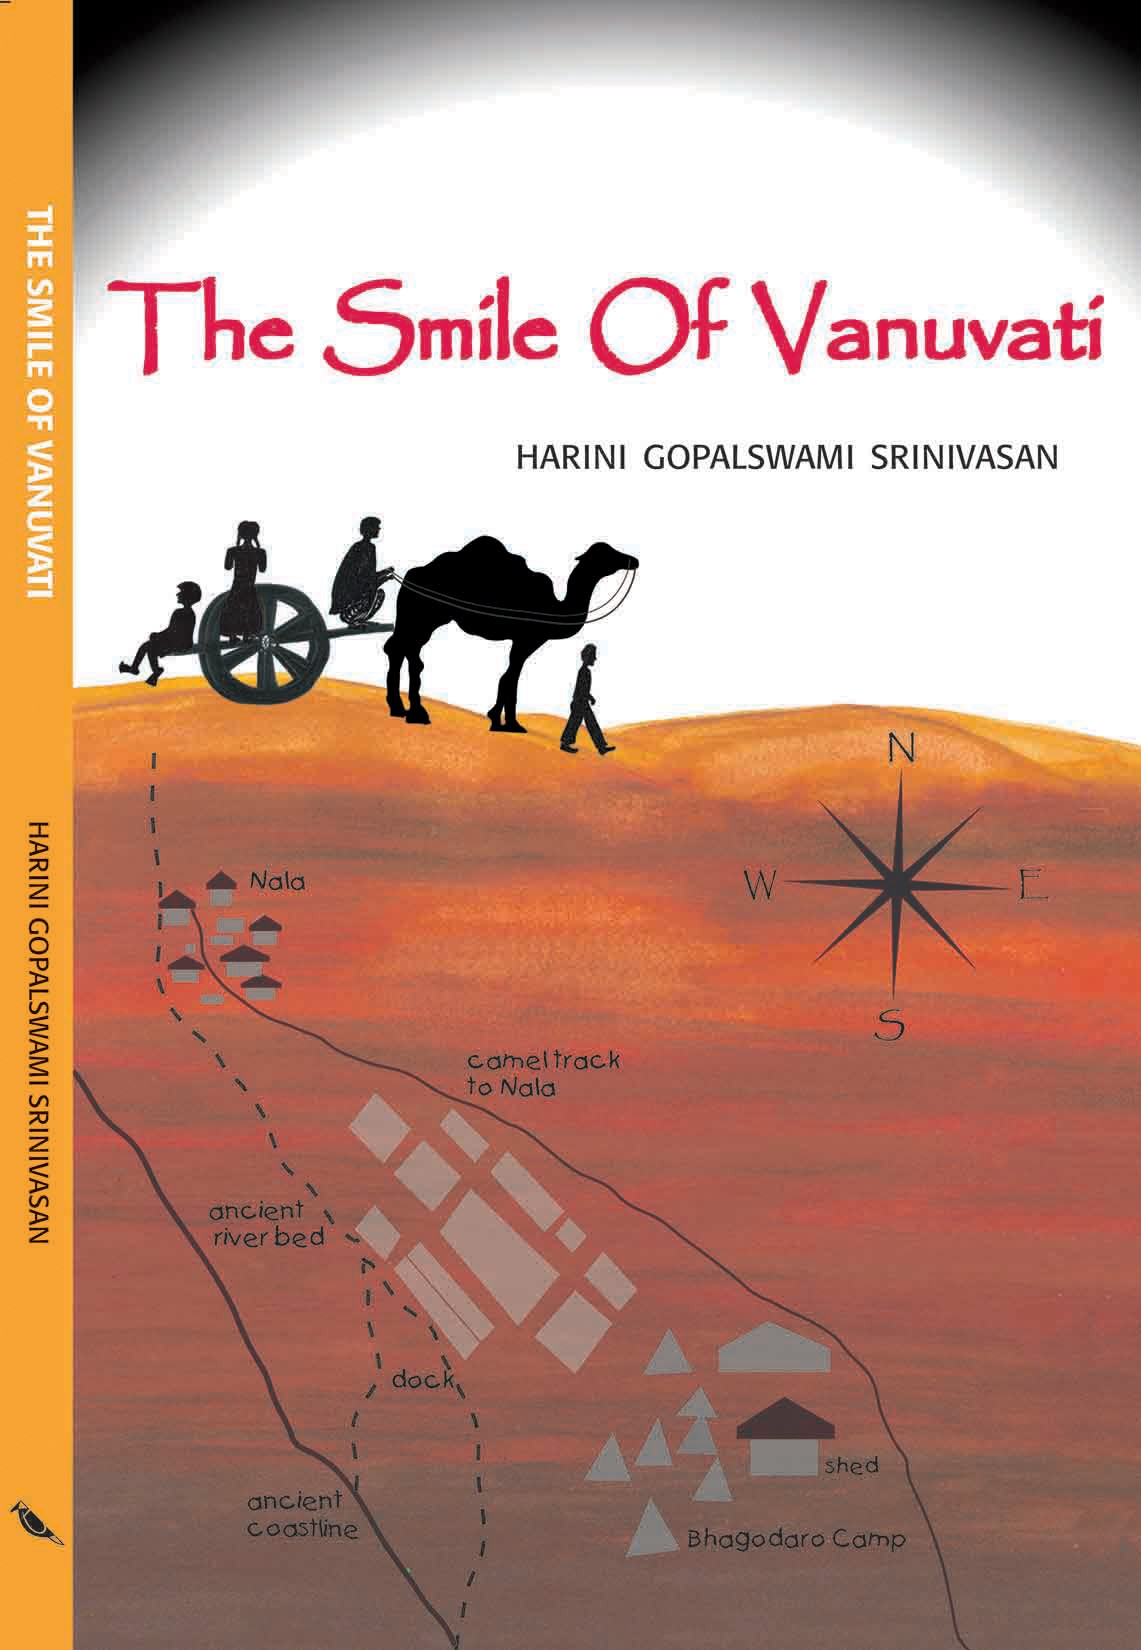 The Smile Of Vanuvati (English)